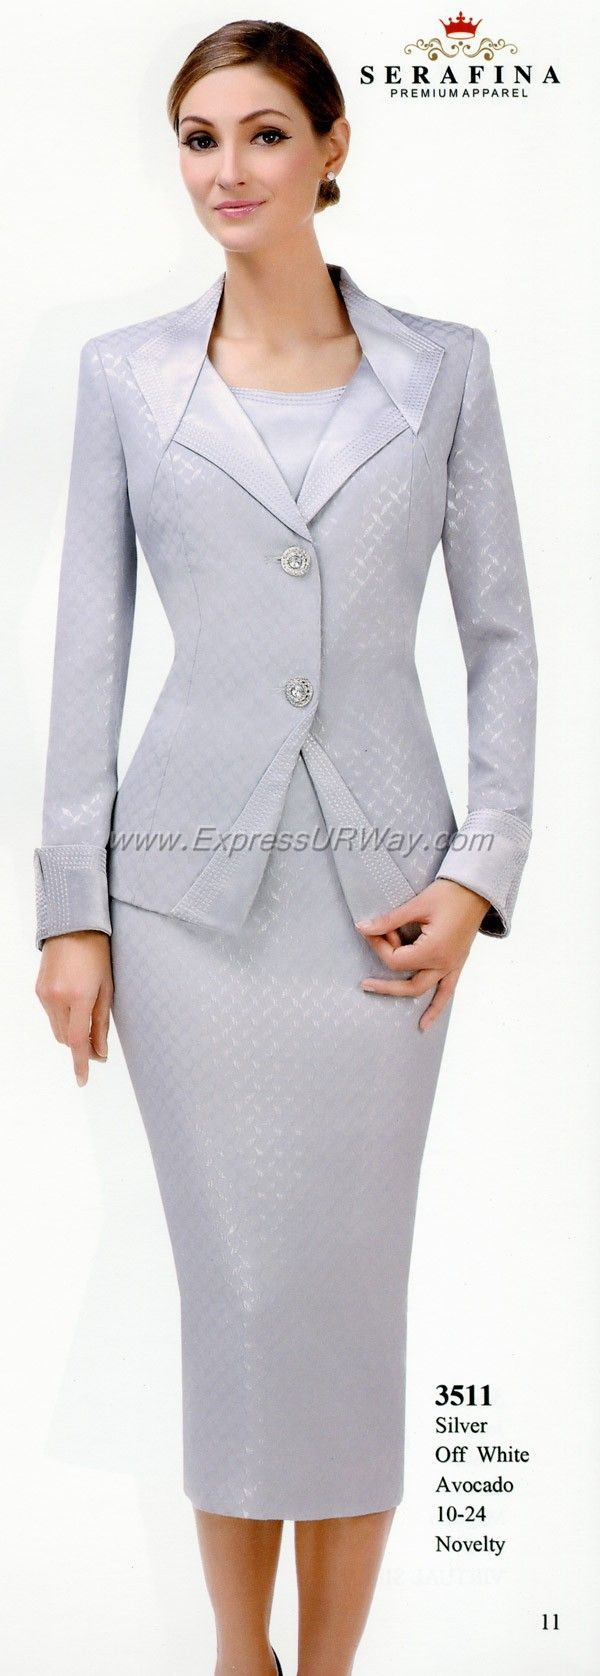 Serafina Womens Suits for Spring 2014 - www.ExpressURWay.com - Serafina, Serafina collections, Serafina Womens Suits, Church Suits, Couture Suits, Spring 2014, ExpressURWay